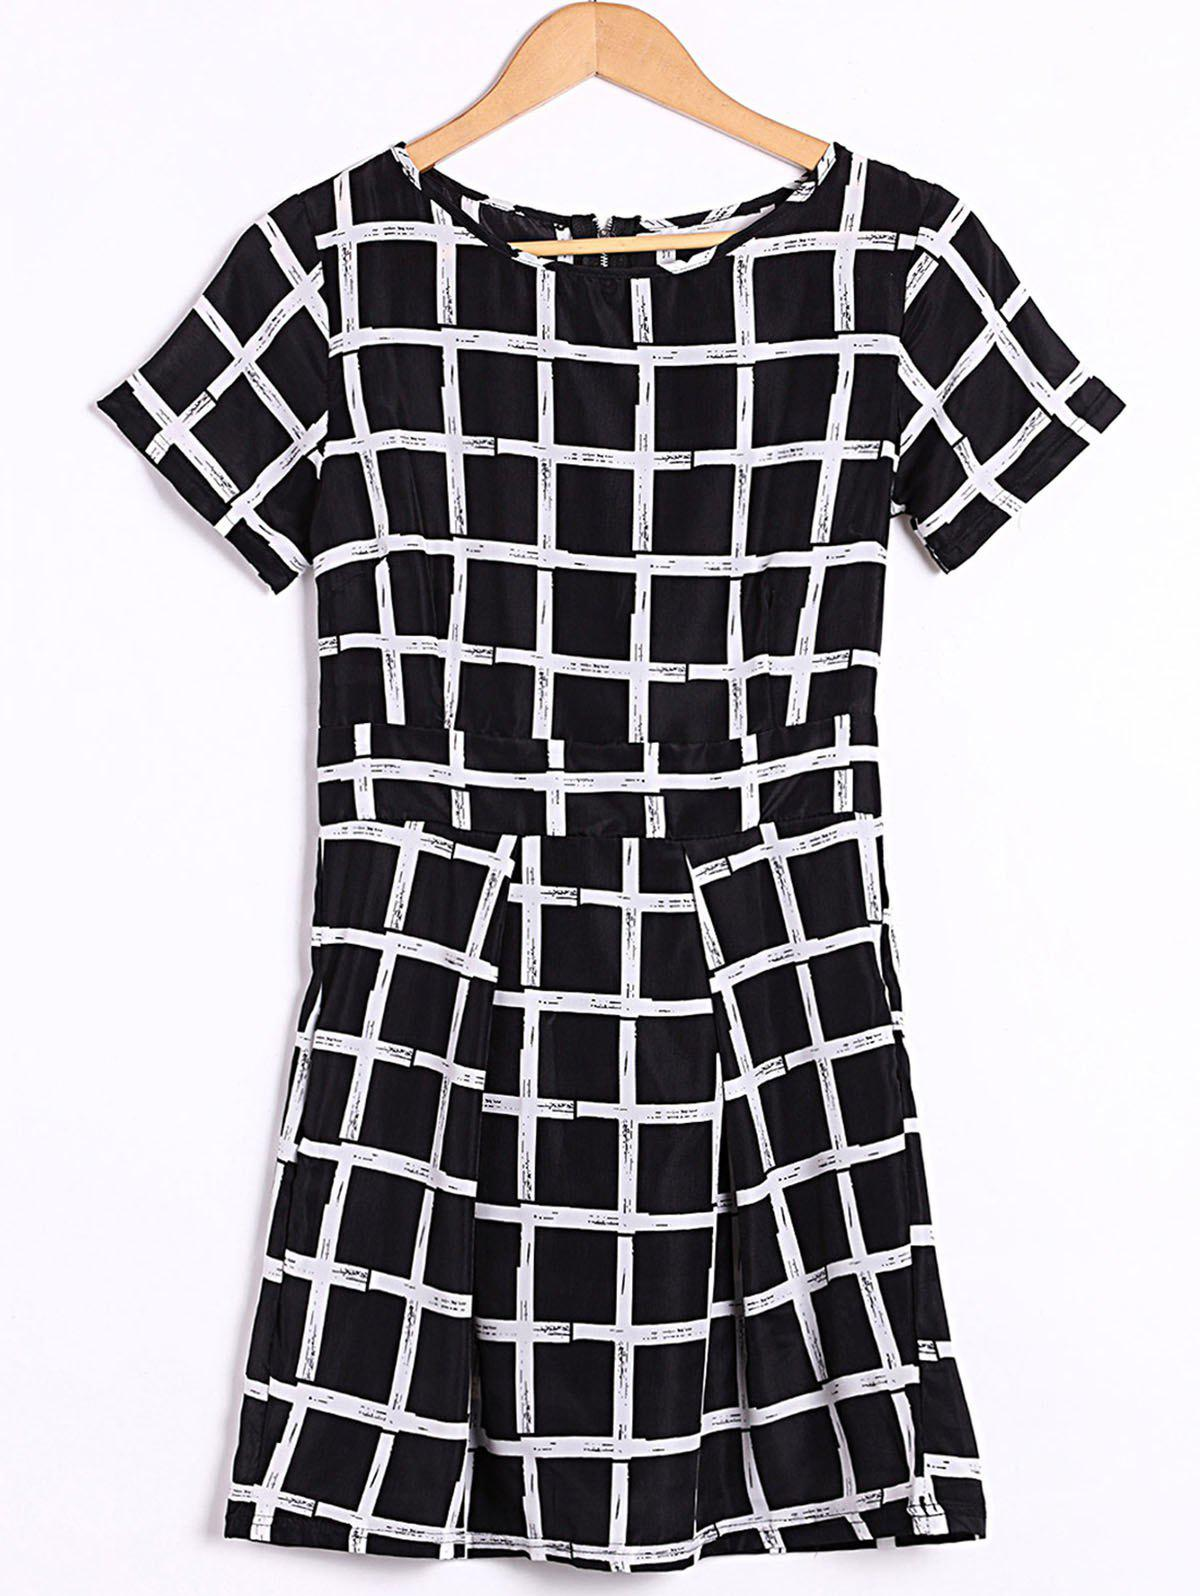 Stylish Women's Scoop Neck Short Sleeve Plaid Dress - BLACK S